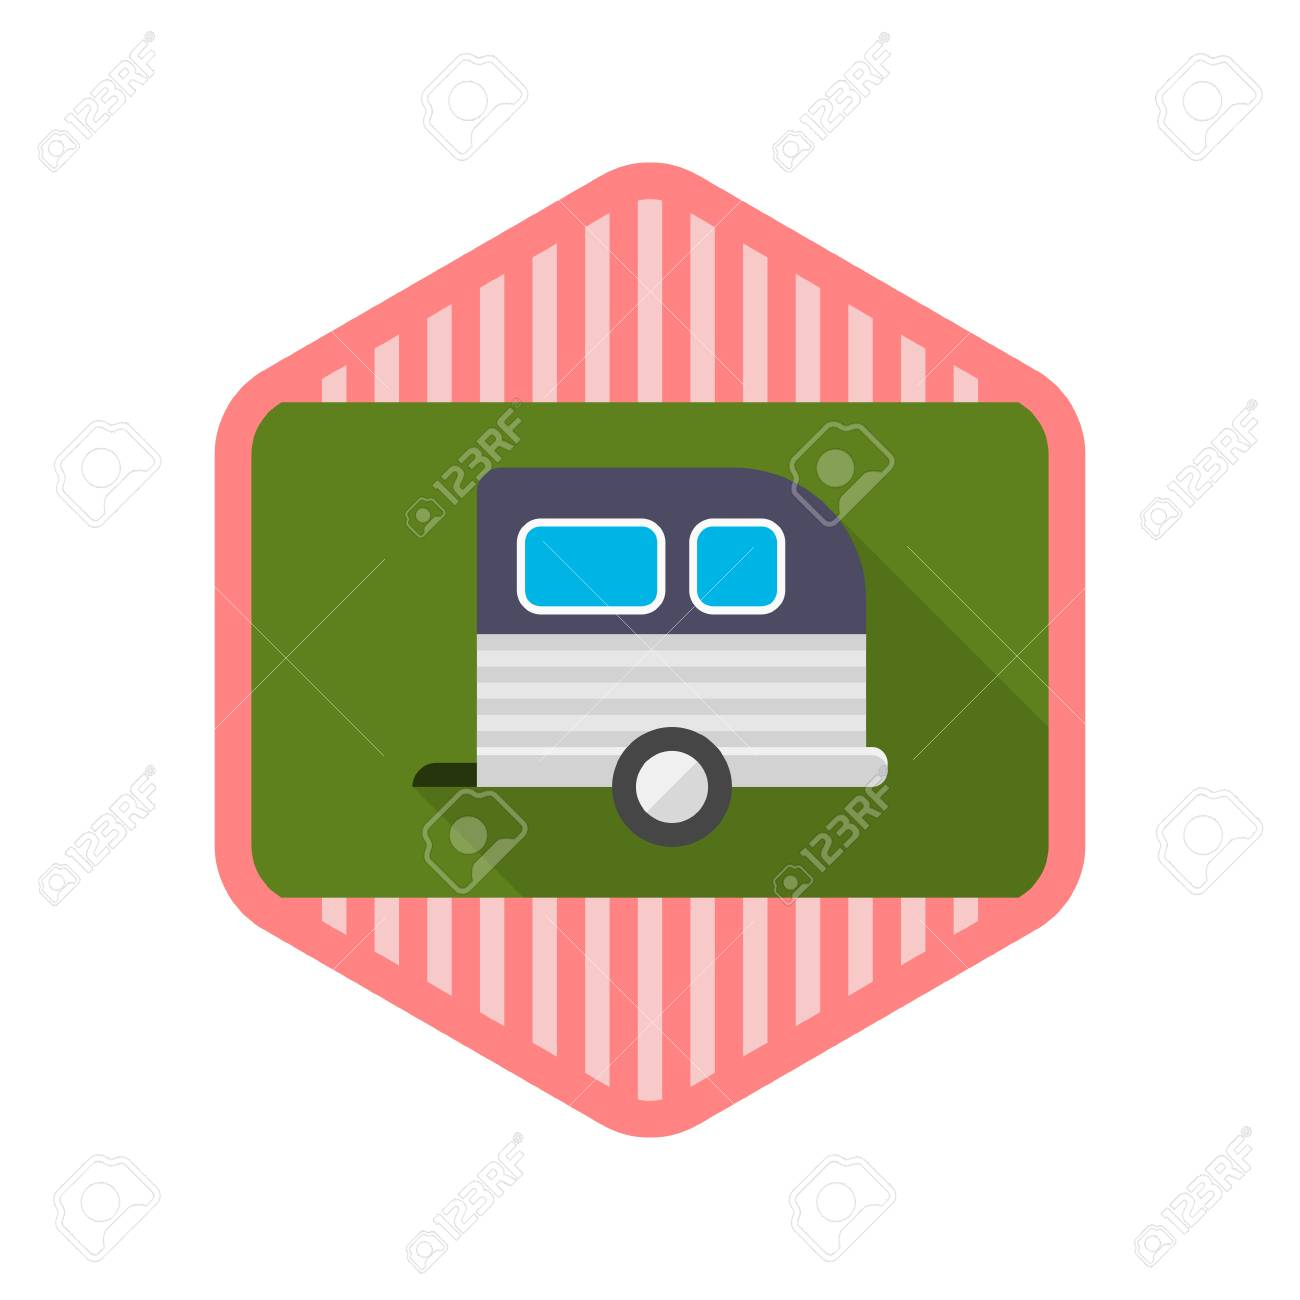 Motorhomes flat icon with long shadow on badge background,EPS 10 - 40612574